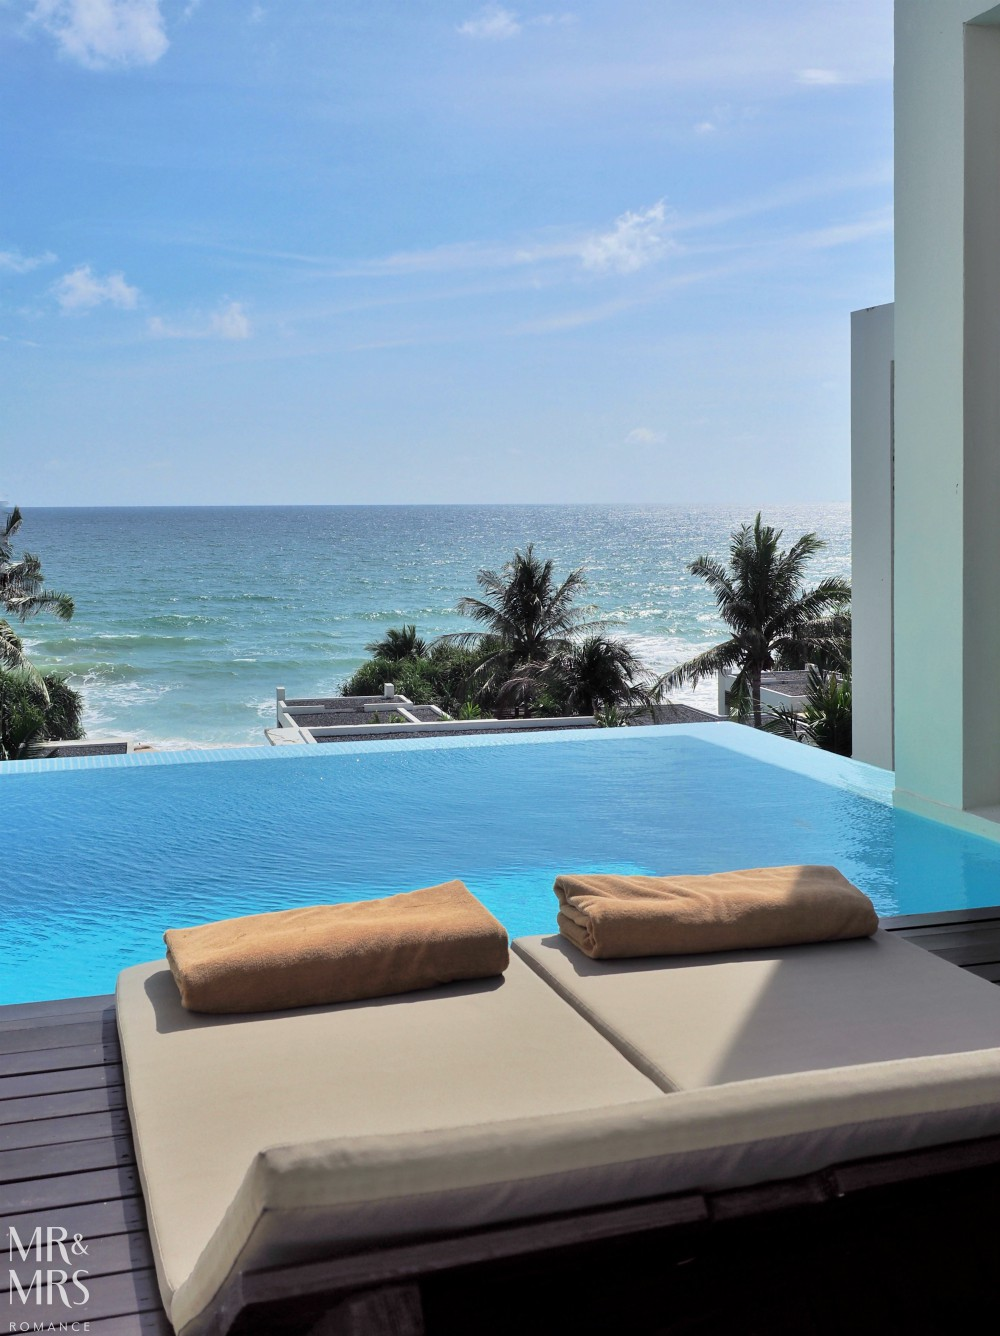 Bucket list hotel pools - Aleenta Phuket, Thailand